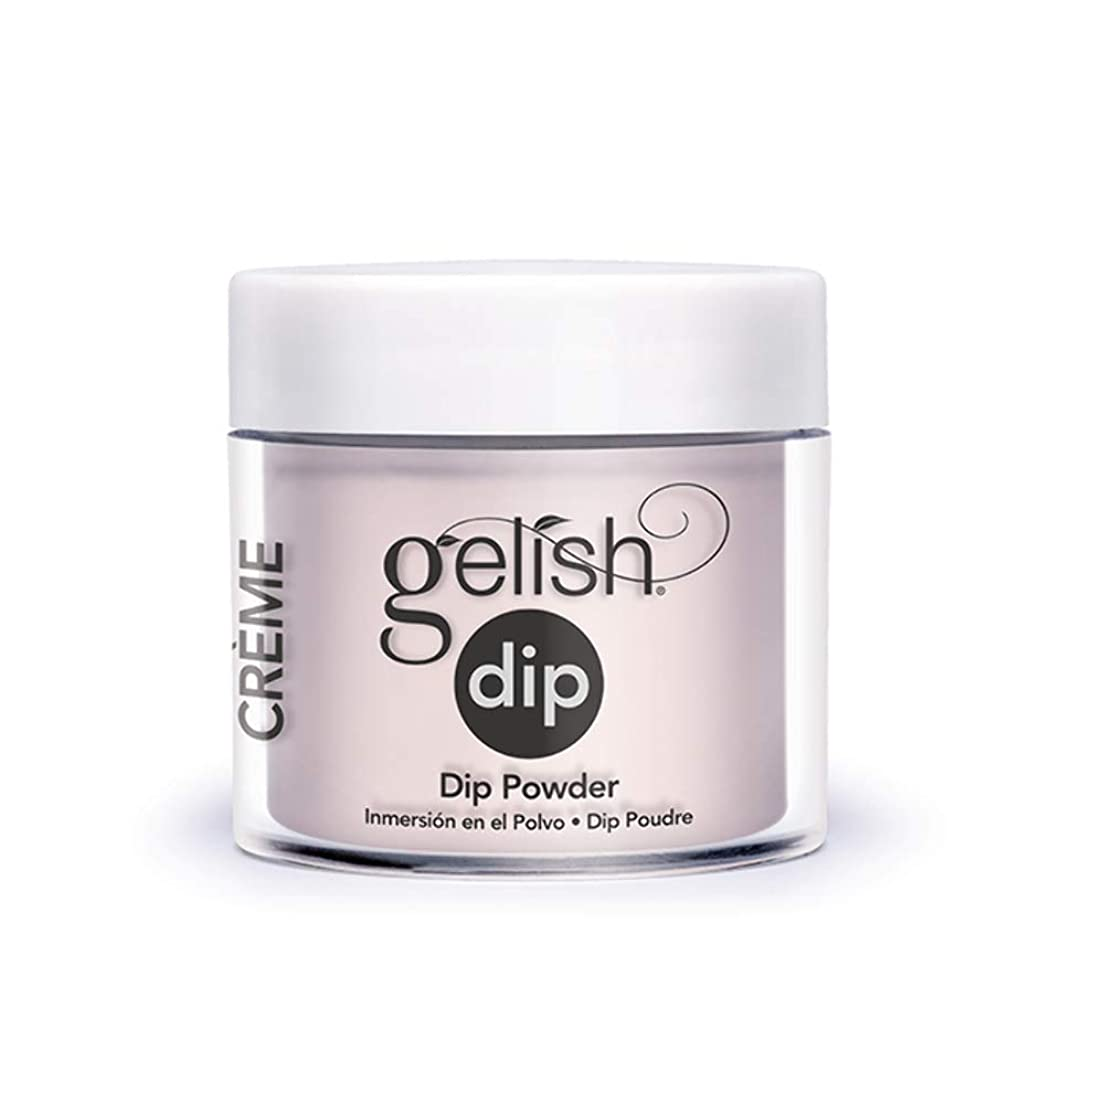 アジテーション塩辛い予感Harmony Gelish - Acrylic Dip Powder - Simply Irresistible - 23g / 0.8oz